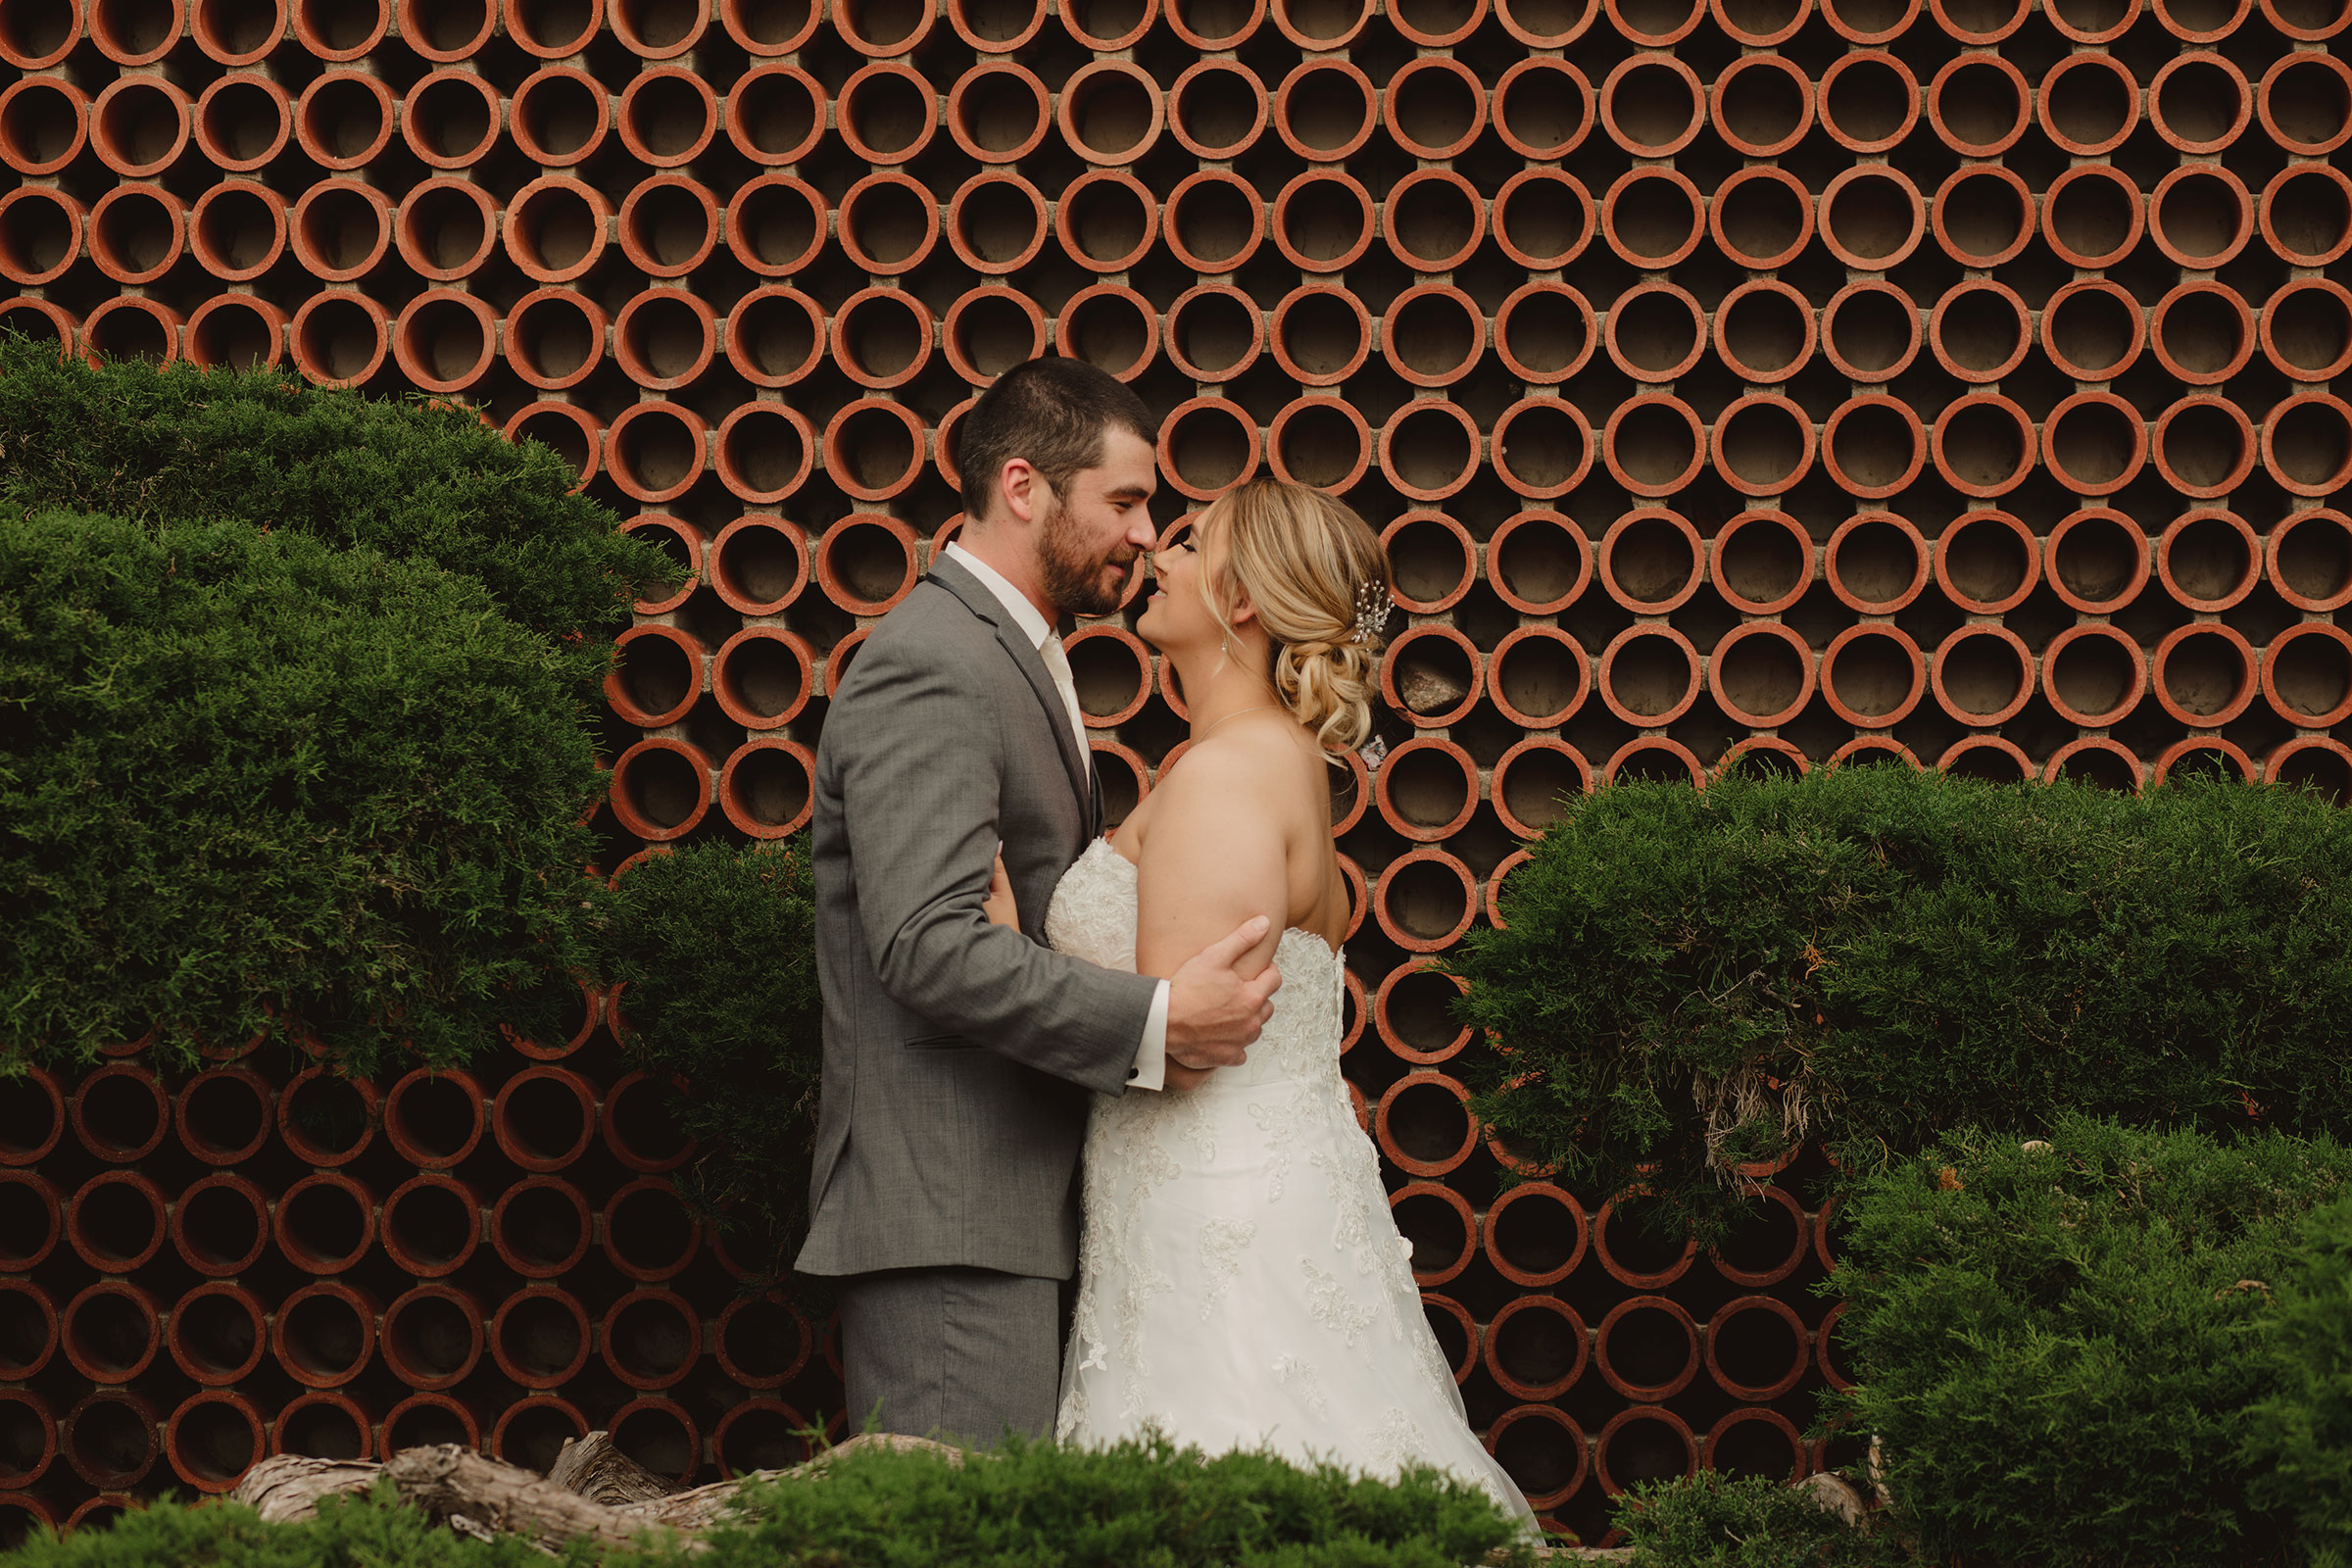 bride-groom-looking-in-eyes-in-front-of-circle-wall-decades-event-center-building-desmoines-iowa-raelyn-ramey-photography..jpg